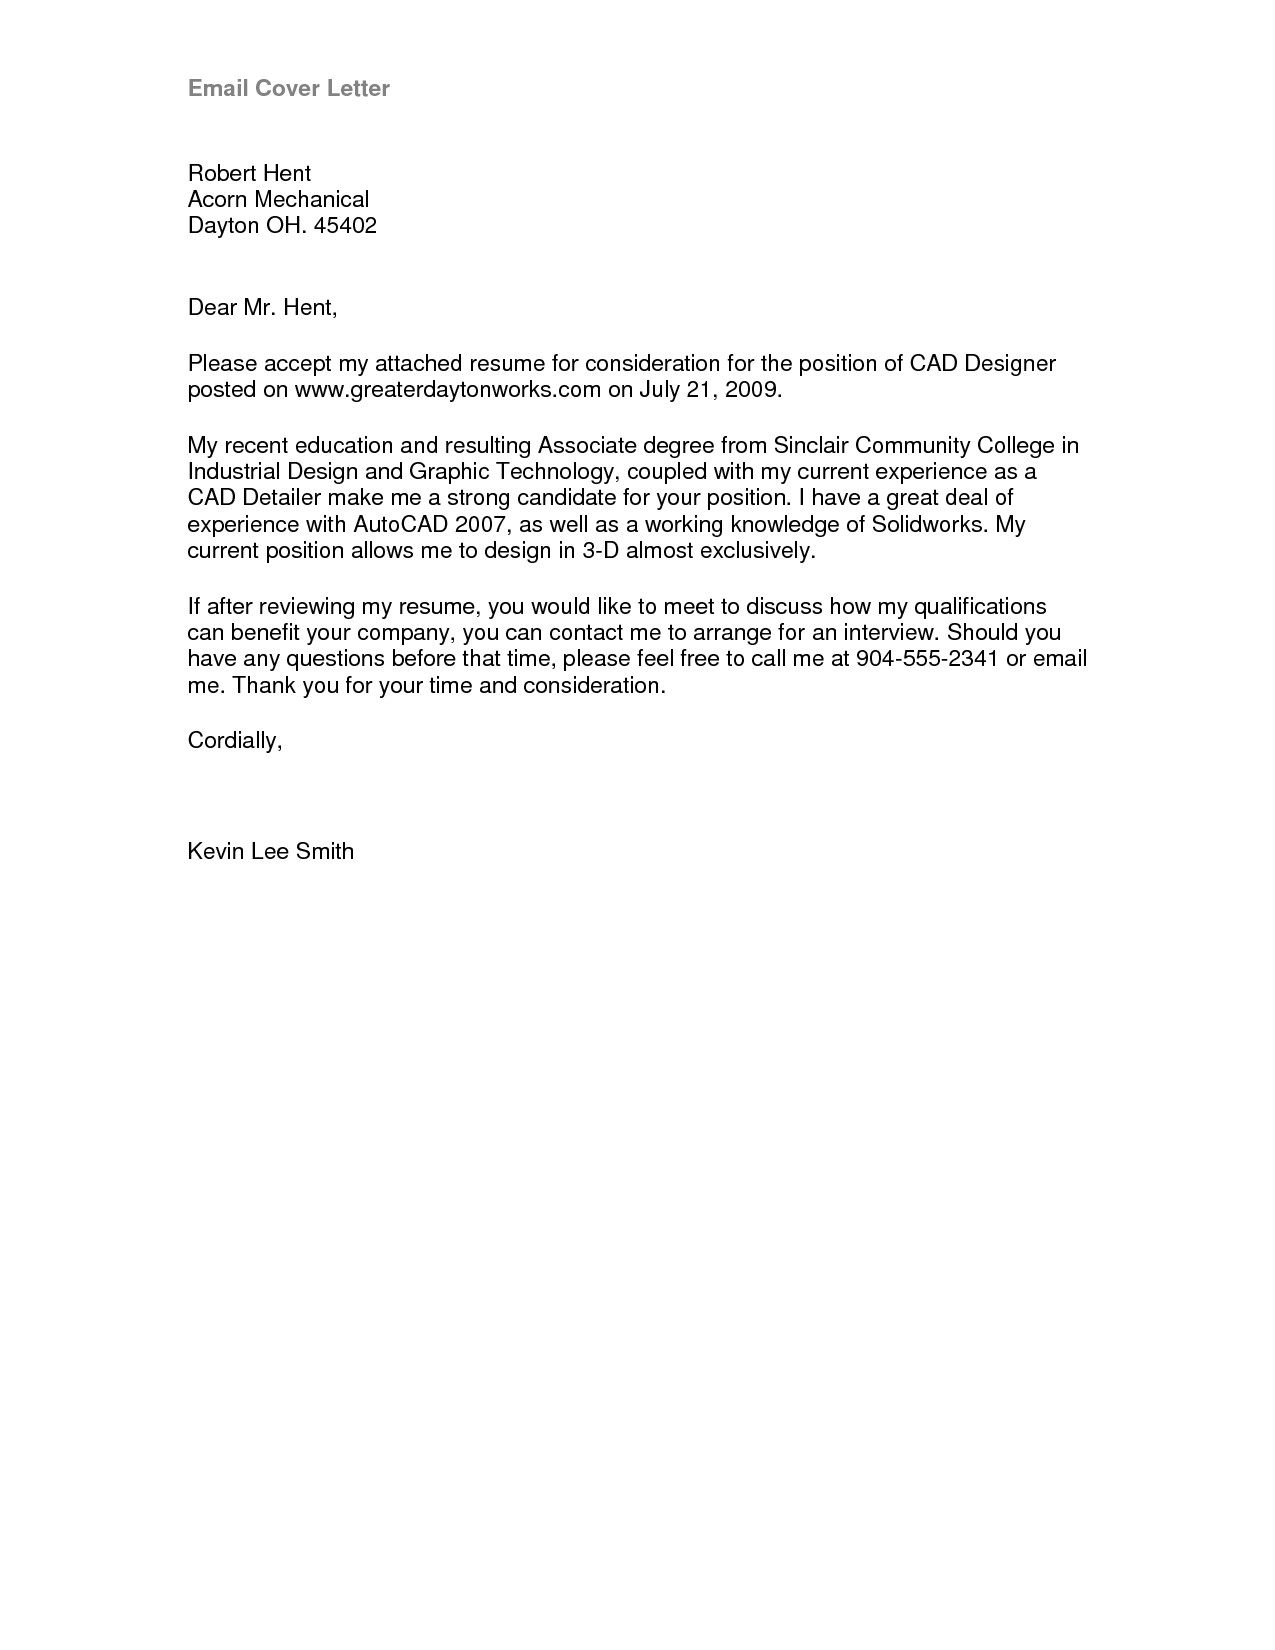 How to Send An Email Cover Letter Cover Letter format Email Best Template Collection